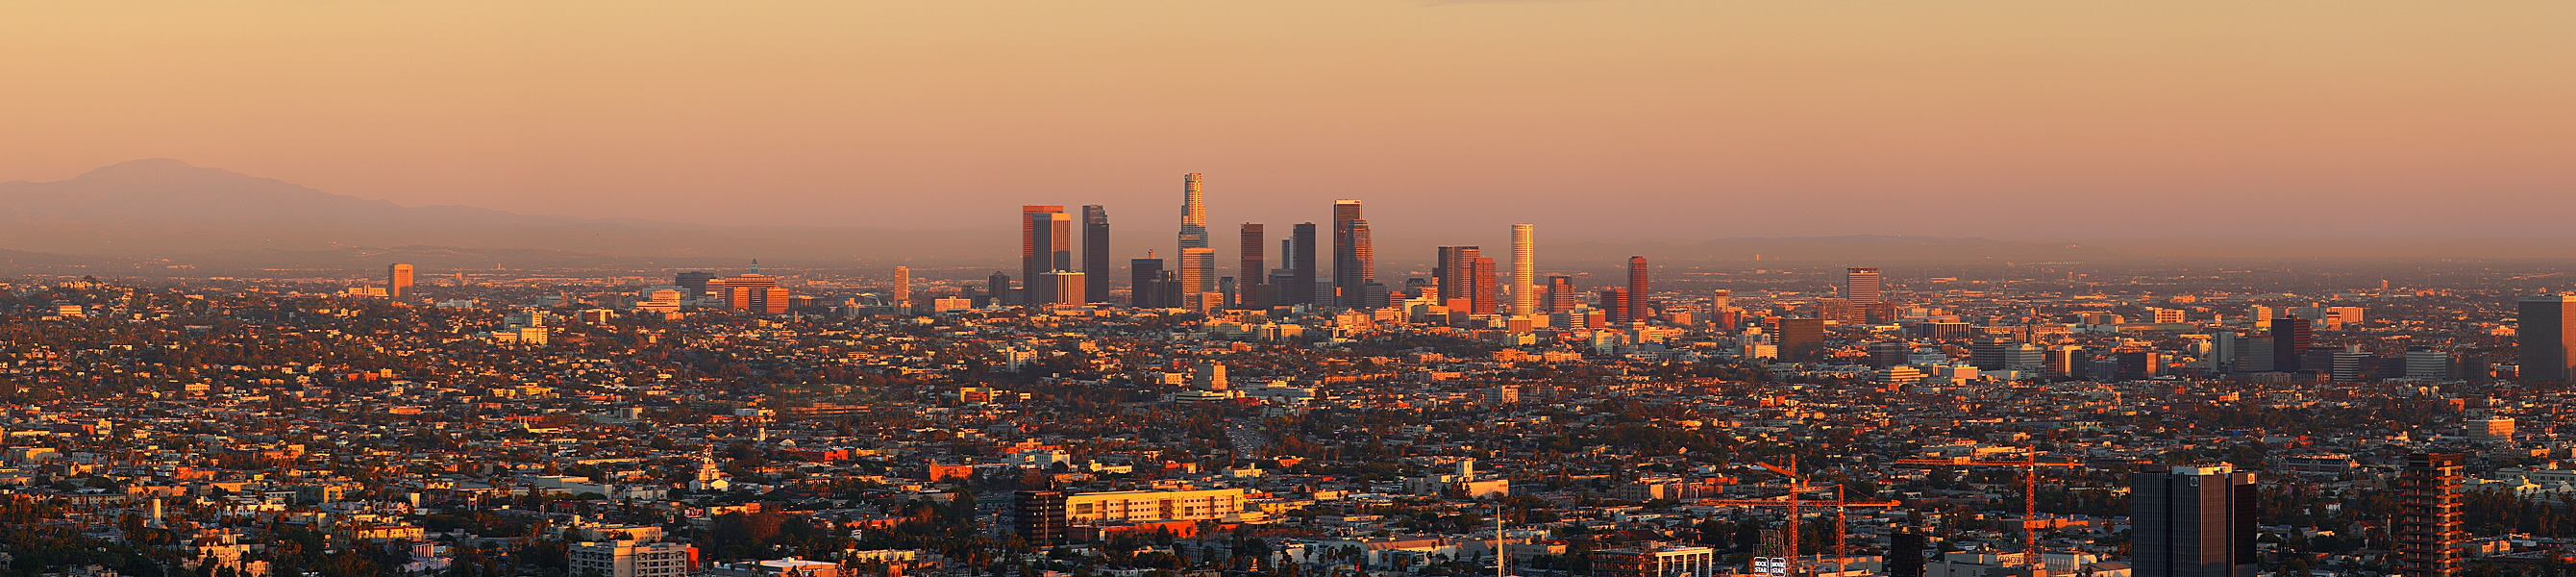 File los angeles wikimedia commons - Panoramic les angles ...